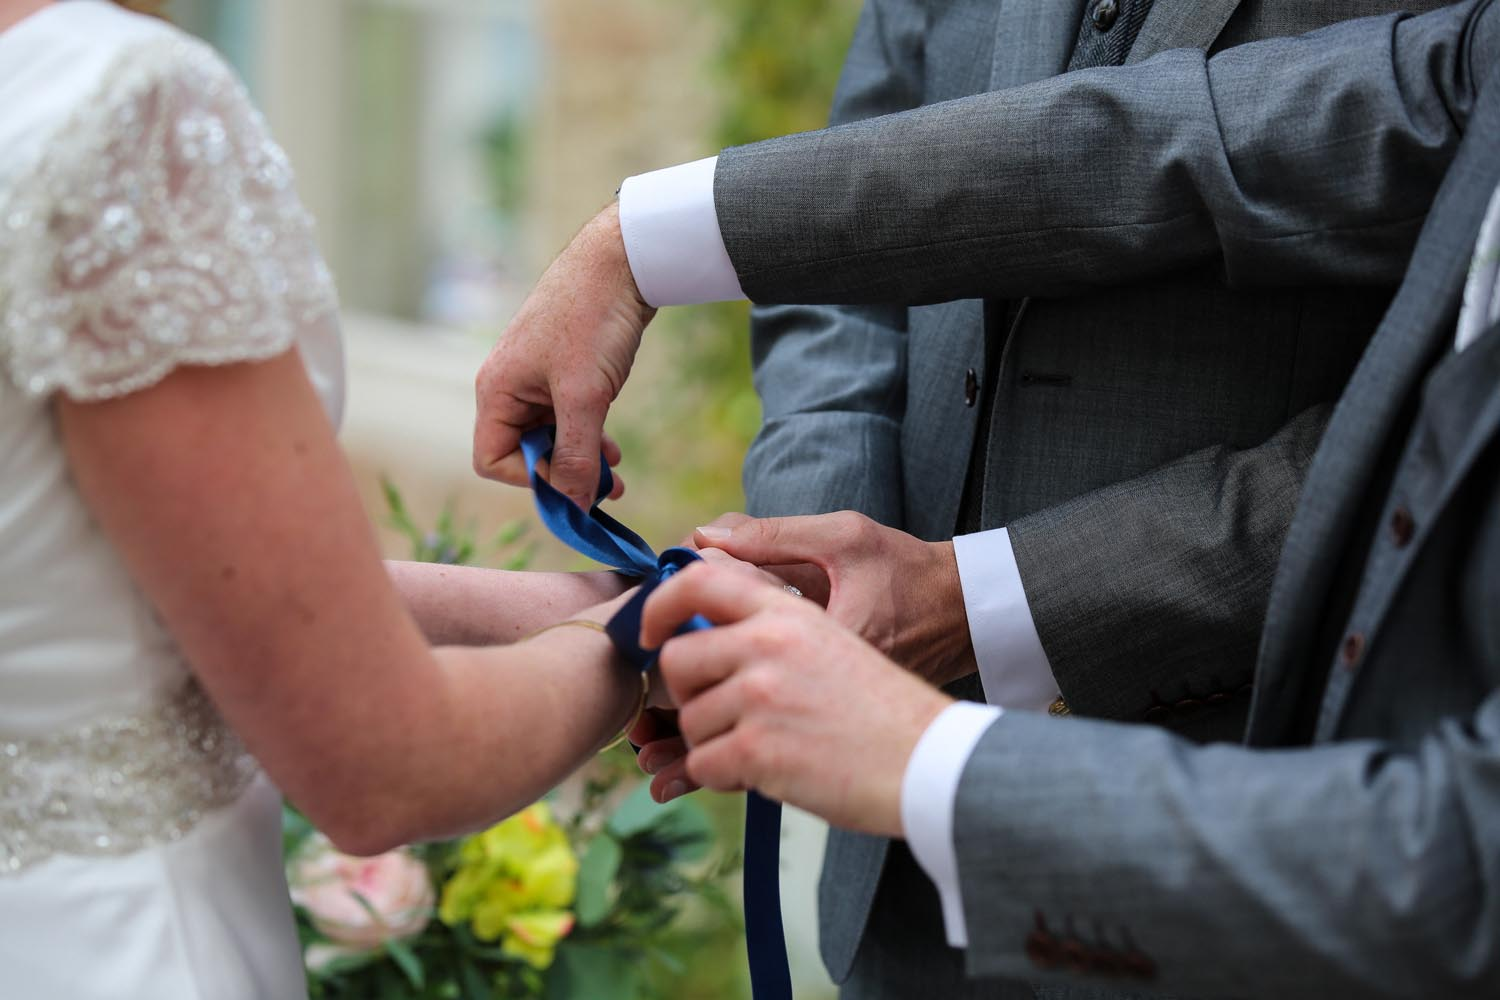 Tying a knot during their wedding ceremony